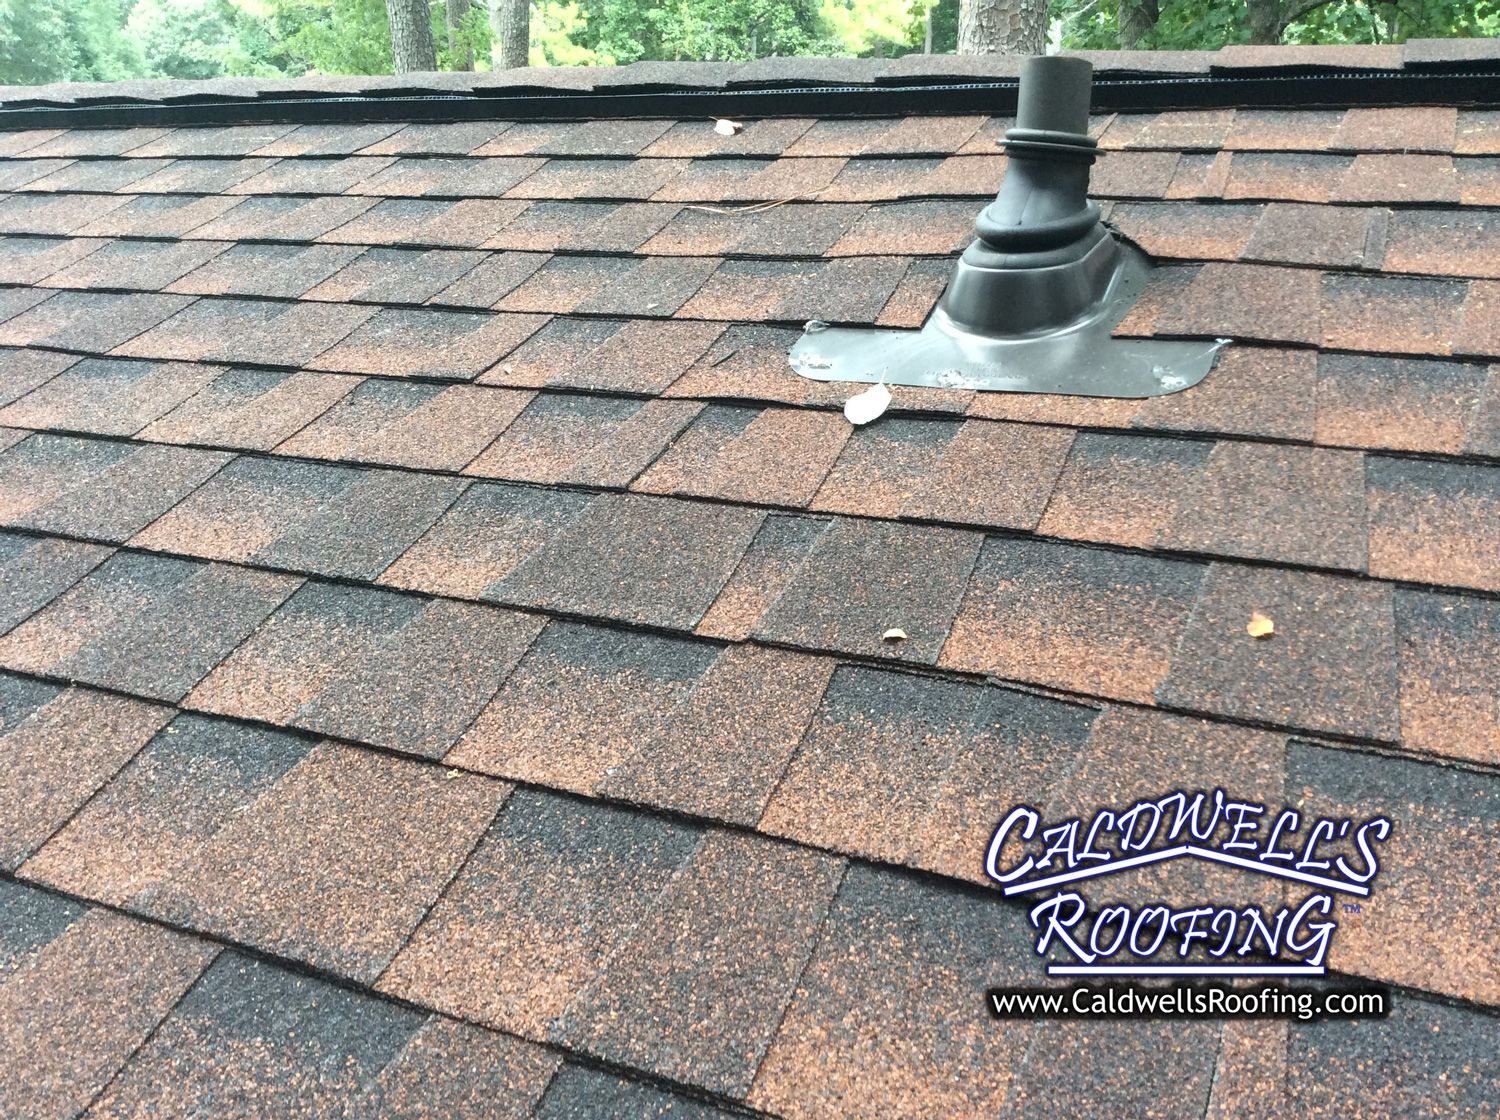 Asphalt roof shingles colors roofing shingles for How many types of roofing shingles are there